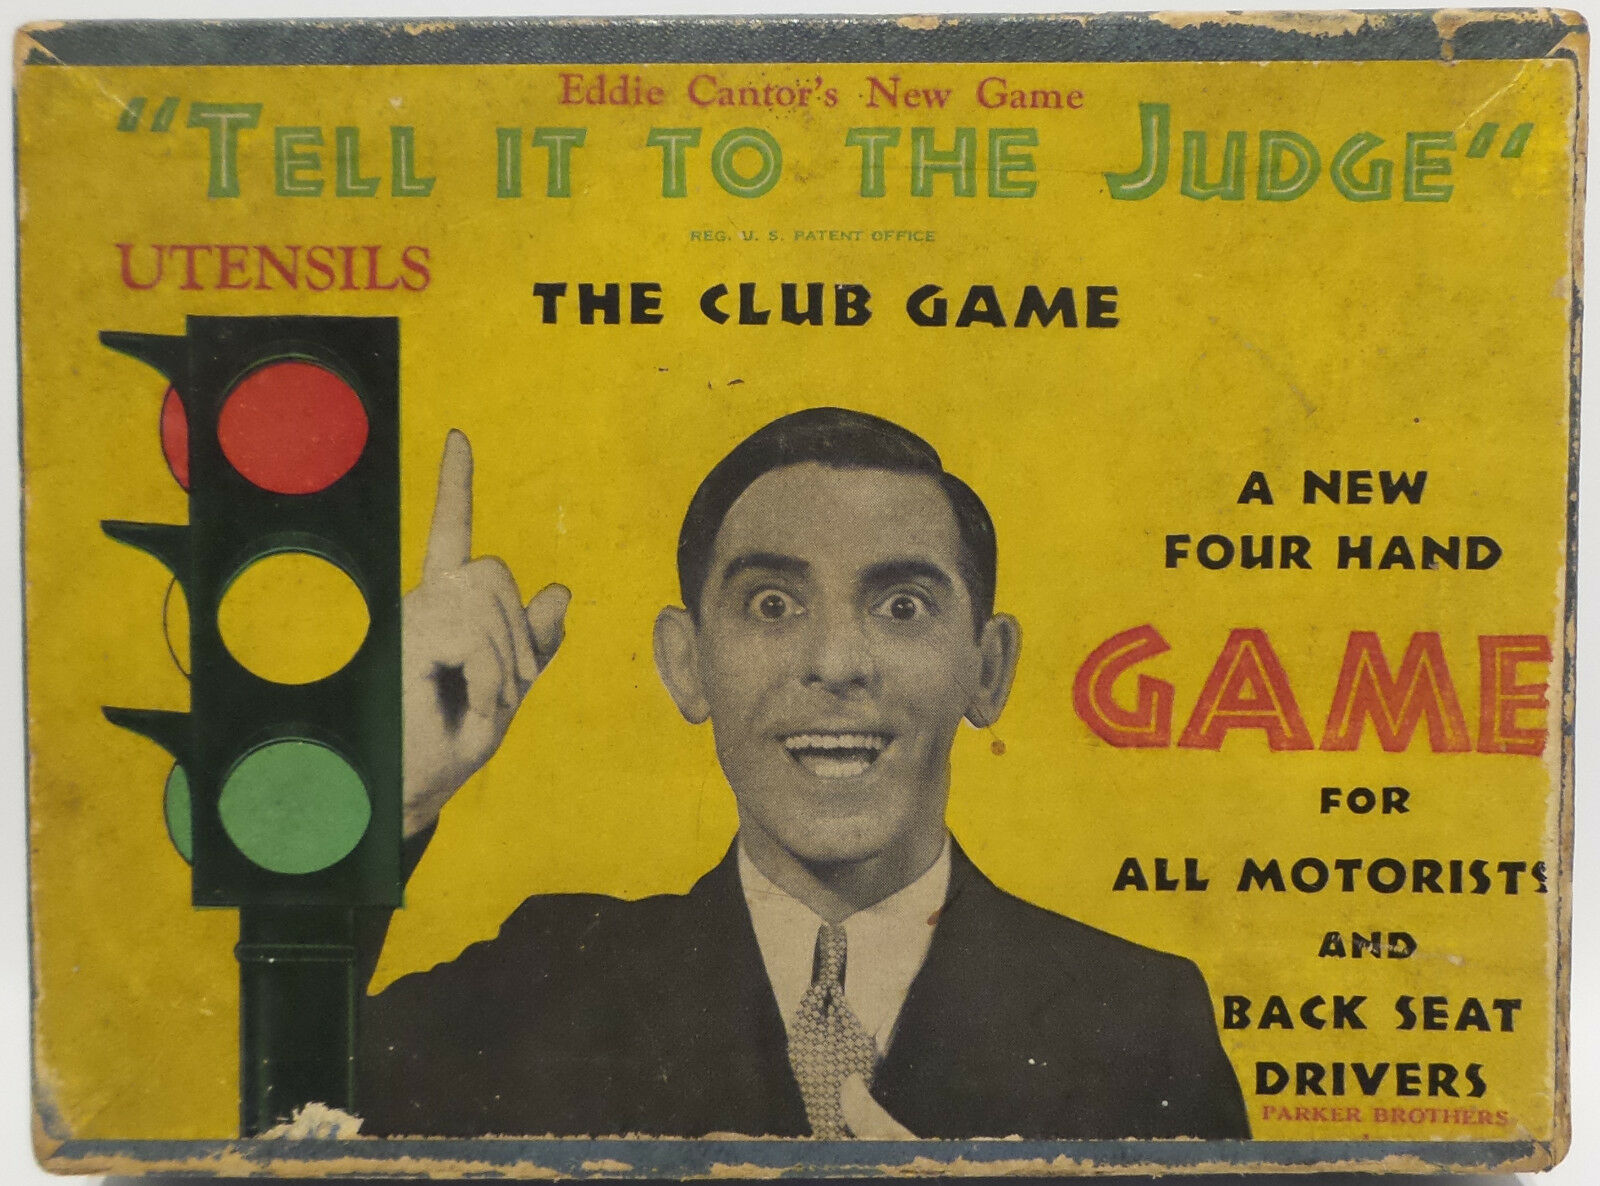 Voitures: tell tell tell it to the judge jeu made in 1932-missing the board - (mlfp) b10e95